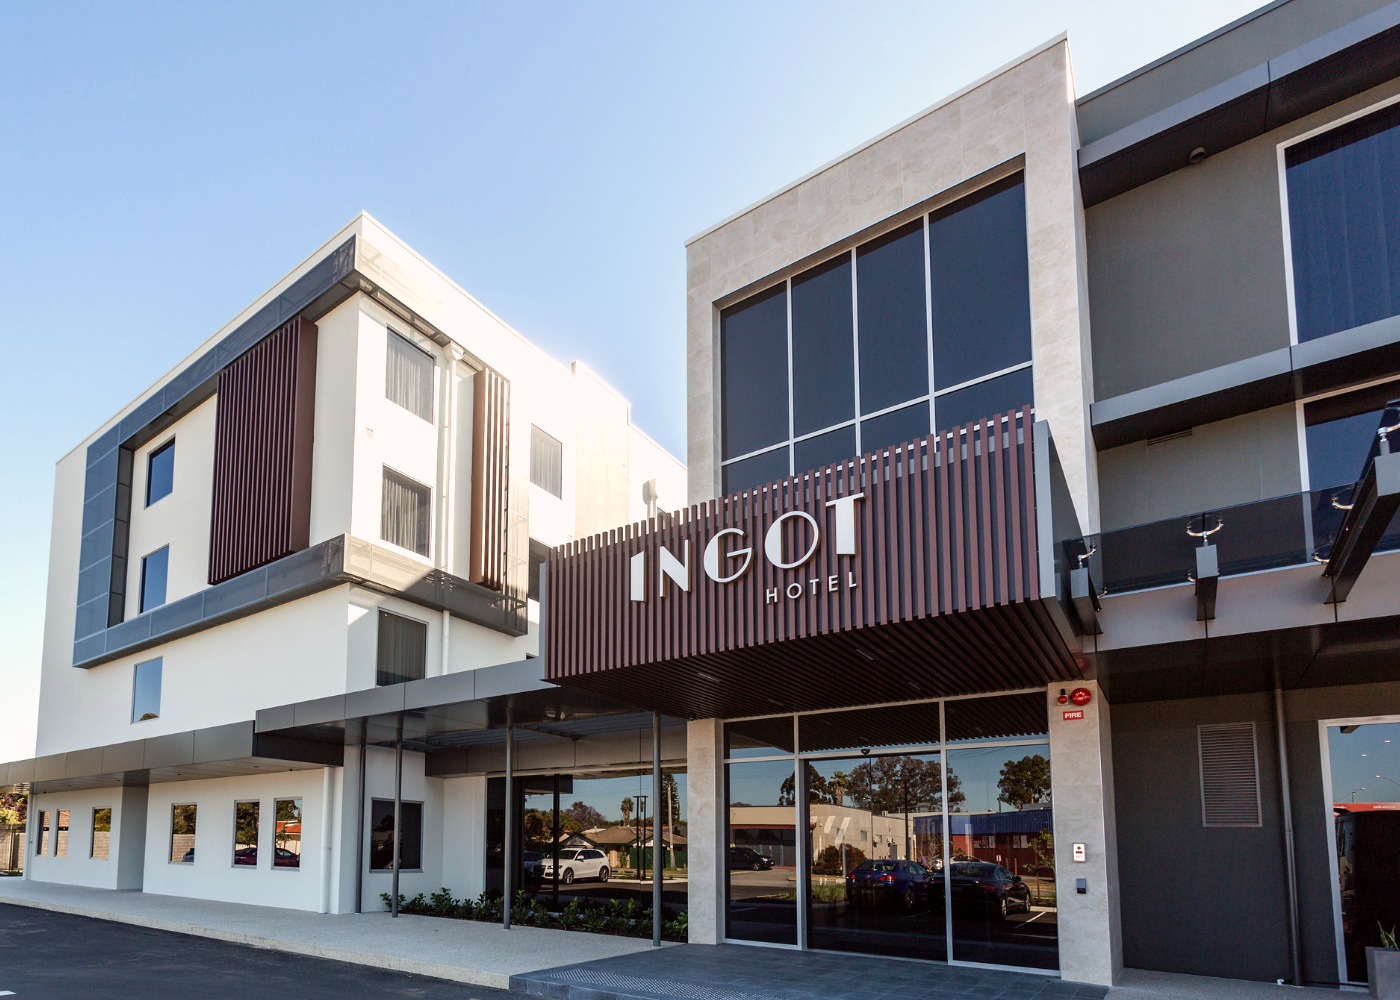 Gateway to Western Australia: We're cosying up with a stay at Ingot Hotel Perth